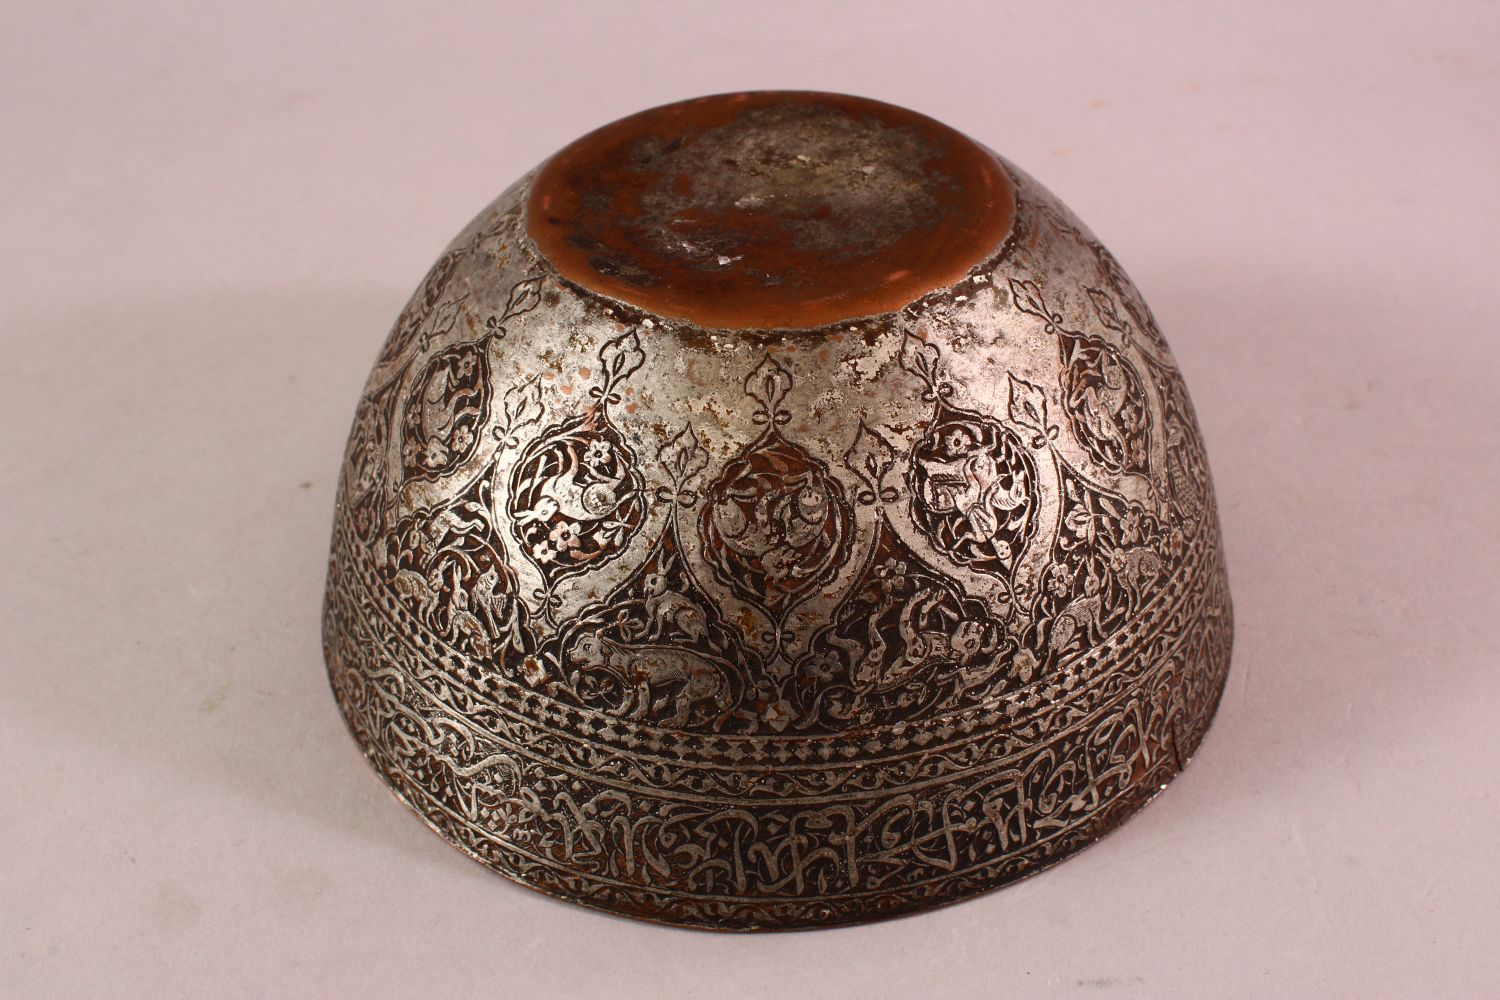 A GOOD ZANDI TINNED COPPER ENGRAVED CALLIGRAPHIC BOWL, with bands of calligraphy, 19cm diameter, - Image 6 of 6